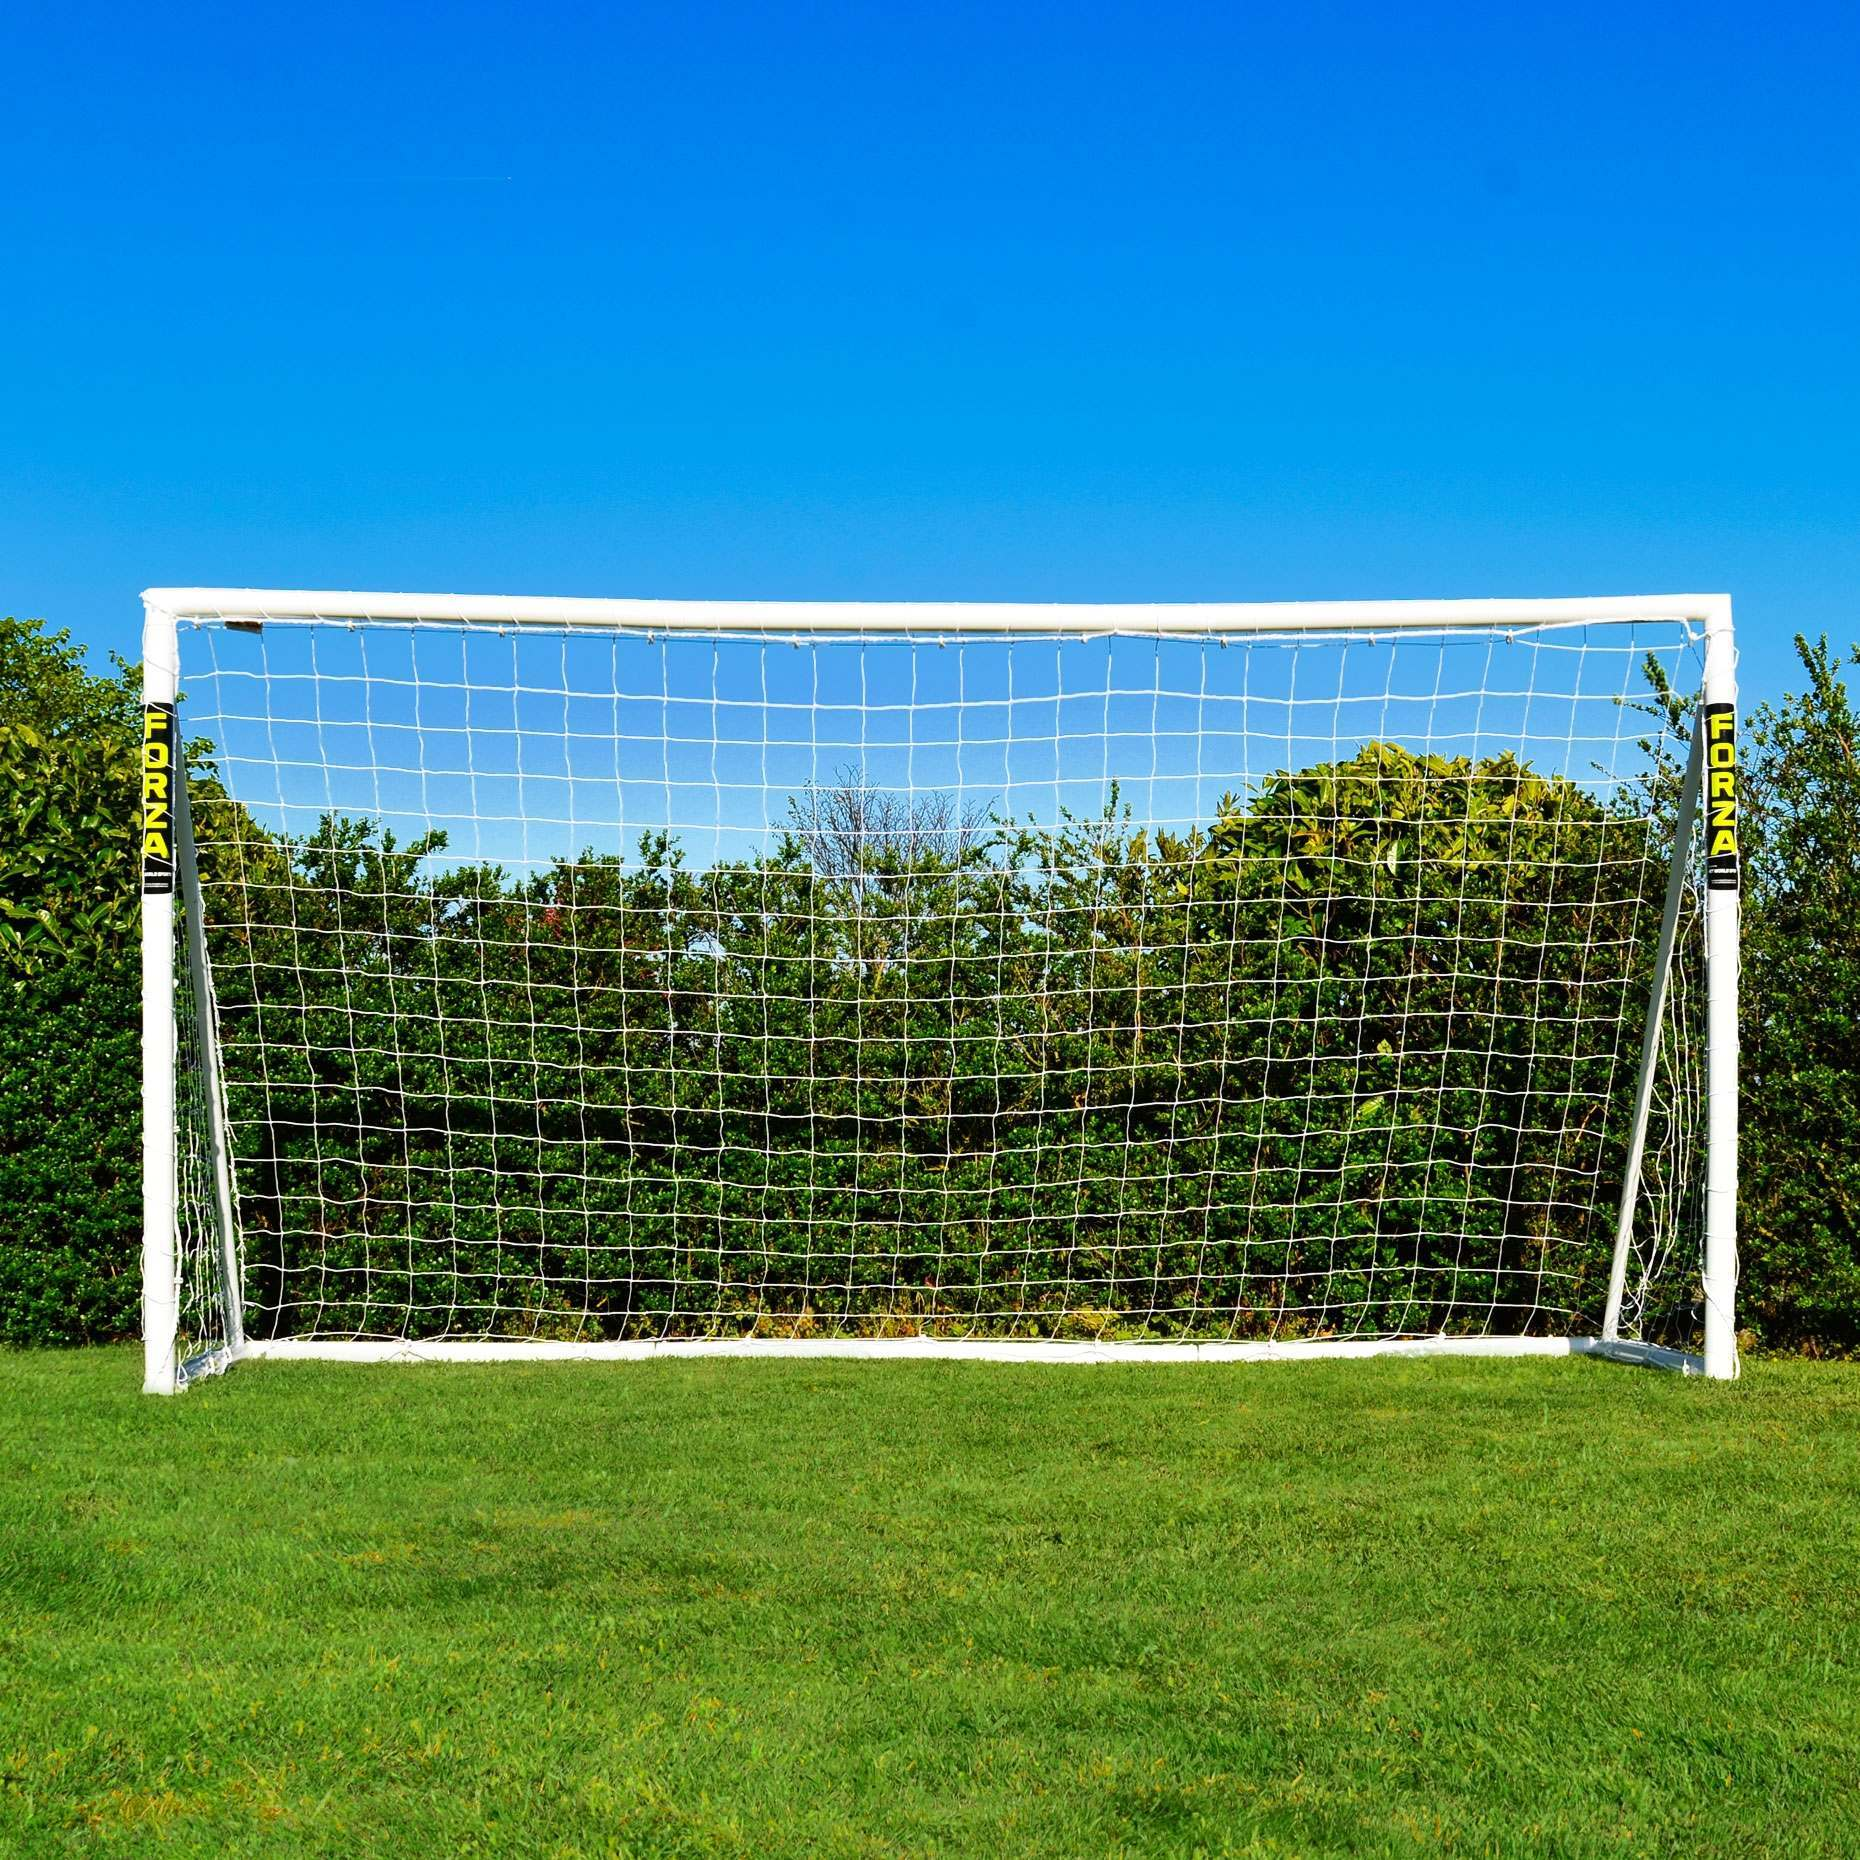 a0f8ea8c 12 x 6 FORZA Football Goal Post